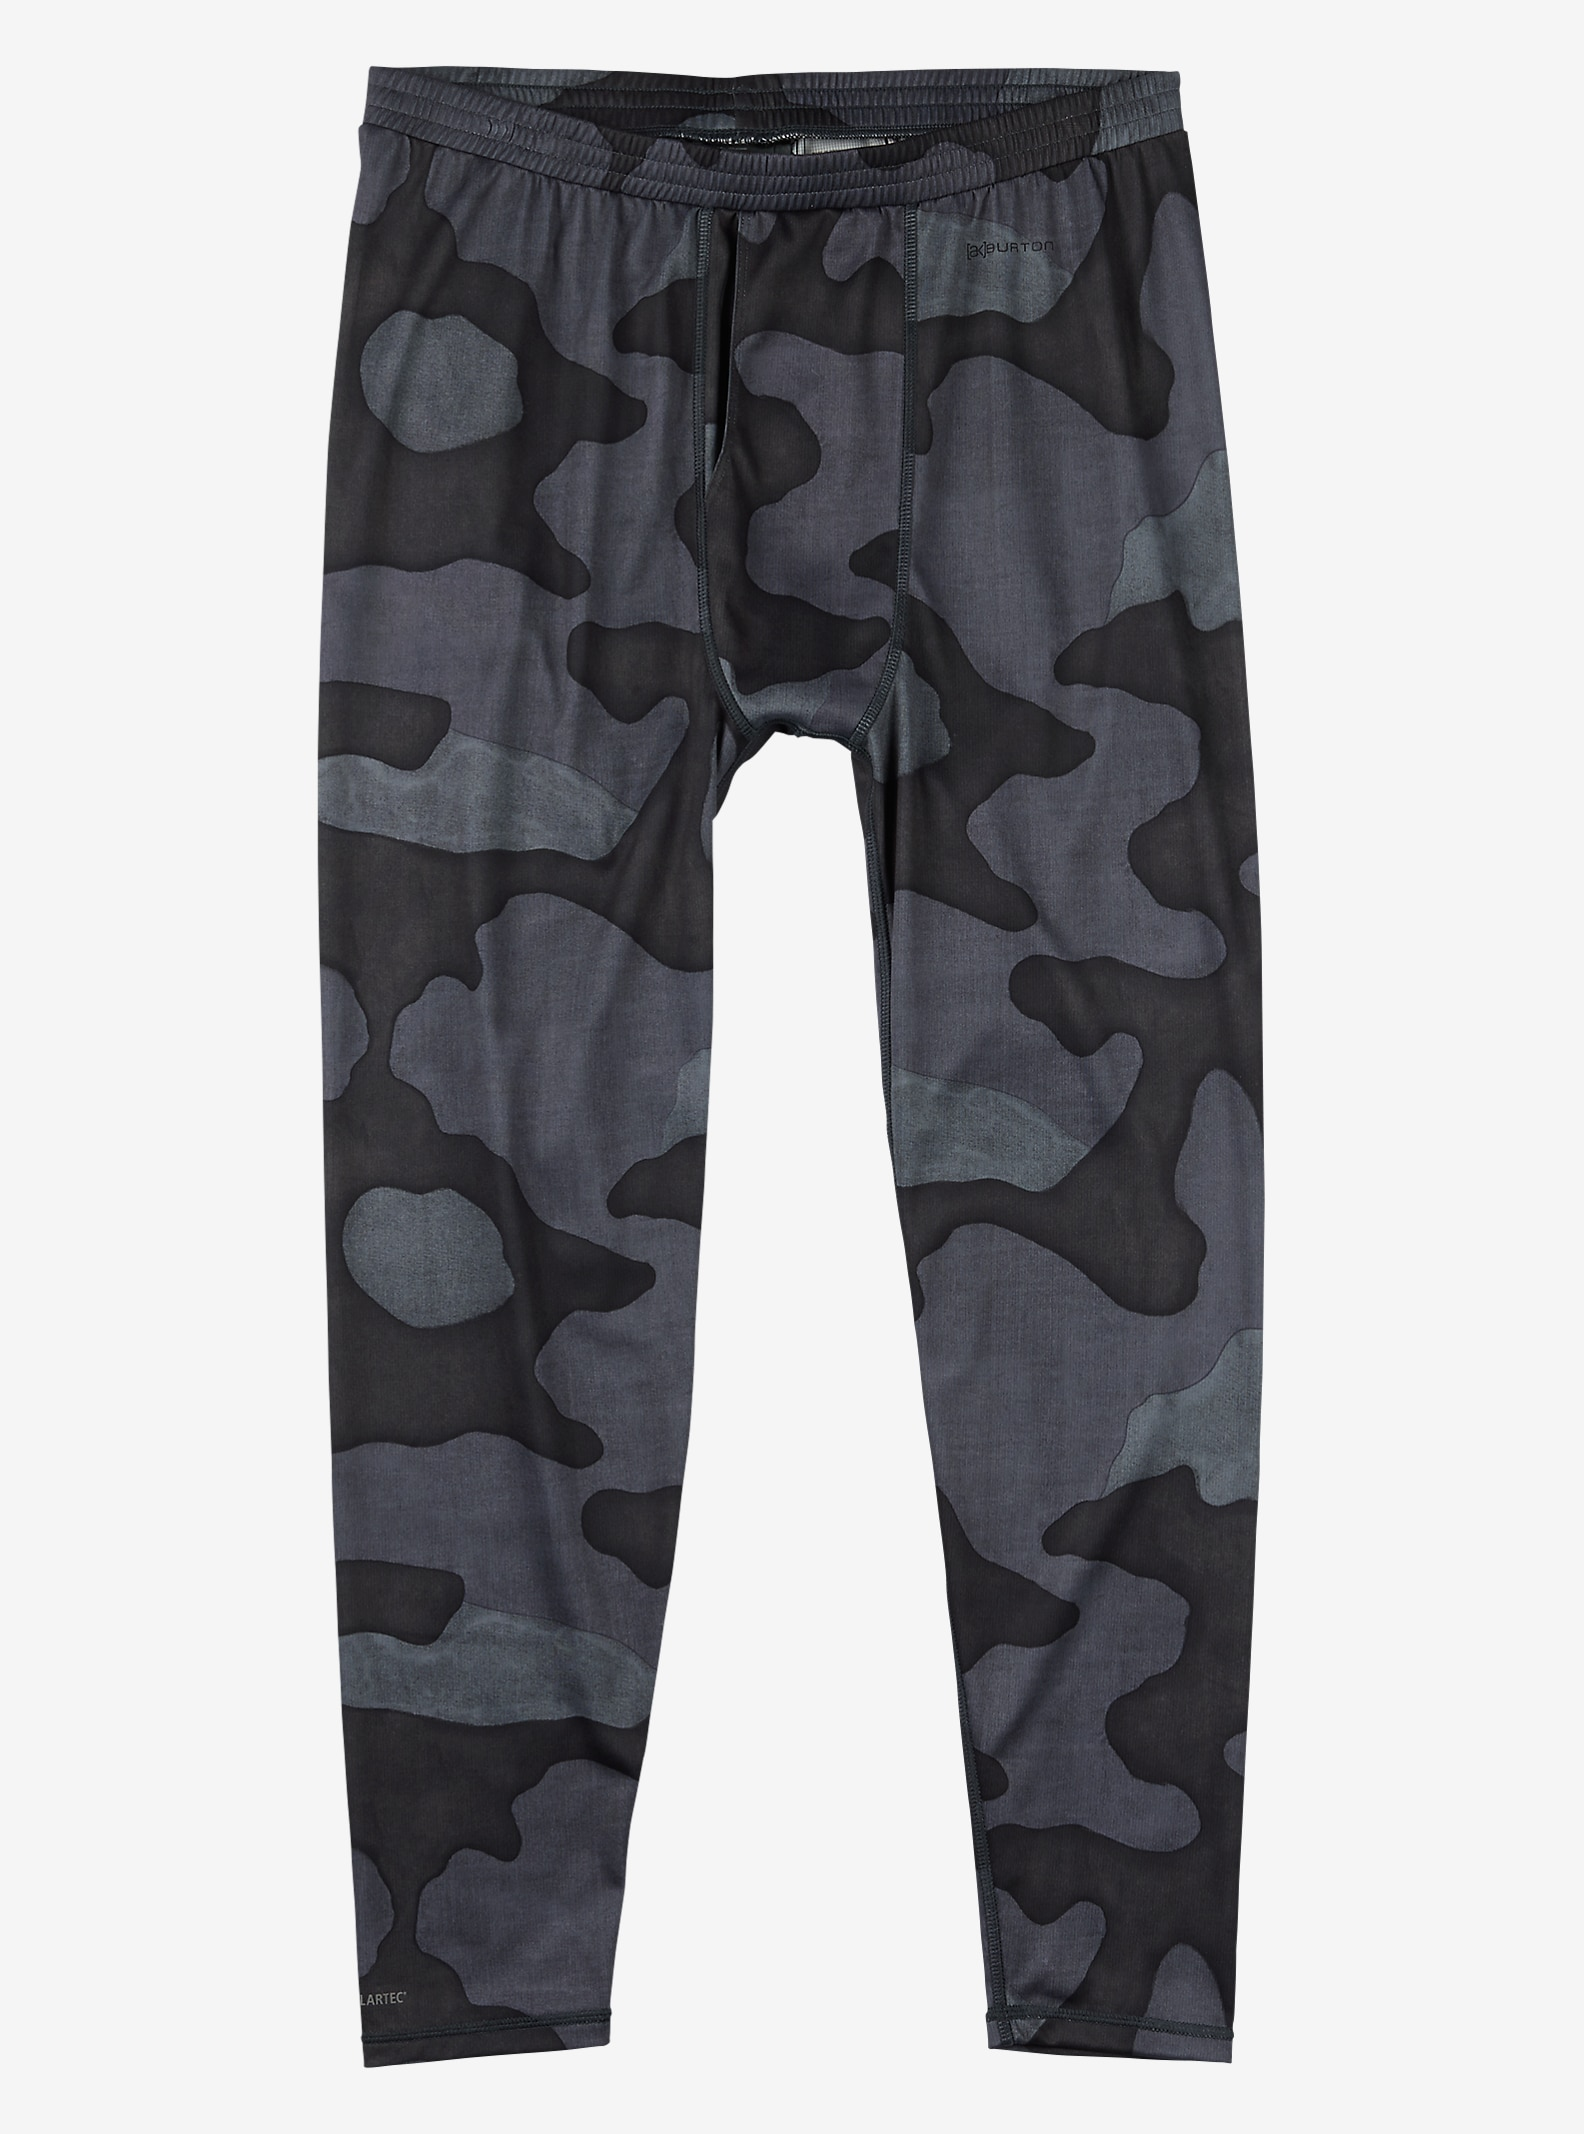 Burton [ak] Power Grid® Pant shown in Black Hombre Camo